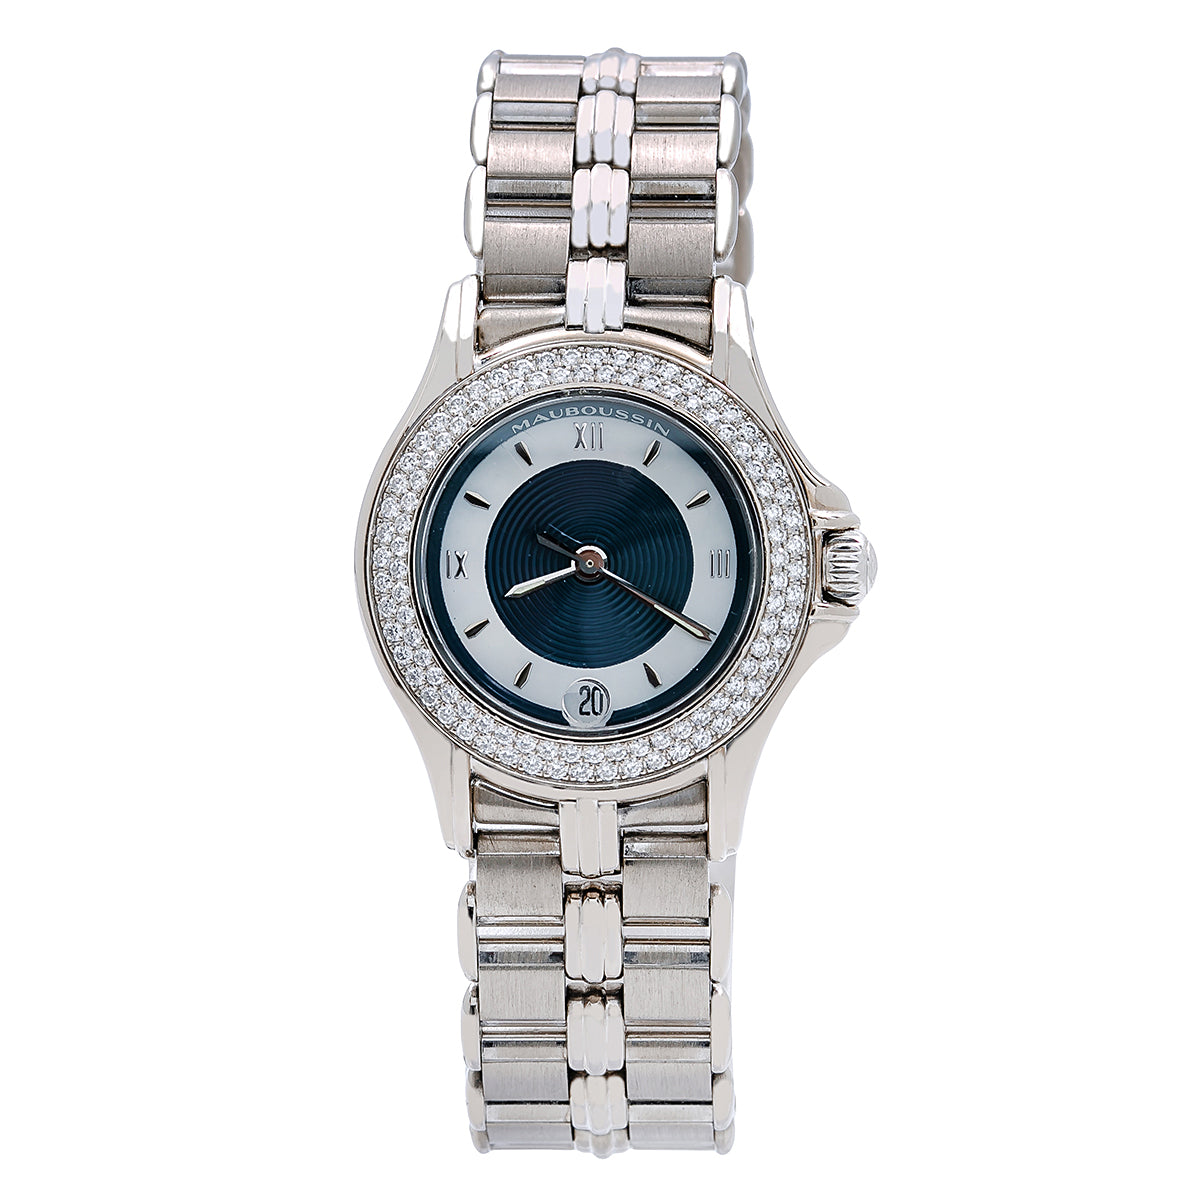 5f30f0438f469 18K White Gold Mauboussin Lady s Round NO140 26mm white and Blue Dial - OMI  Jewelry